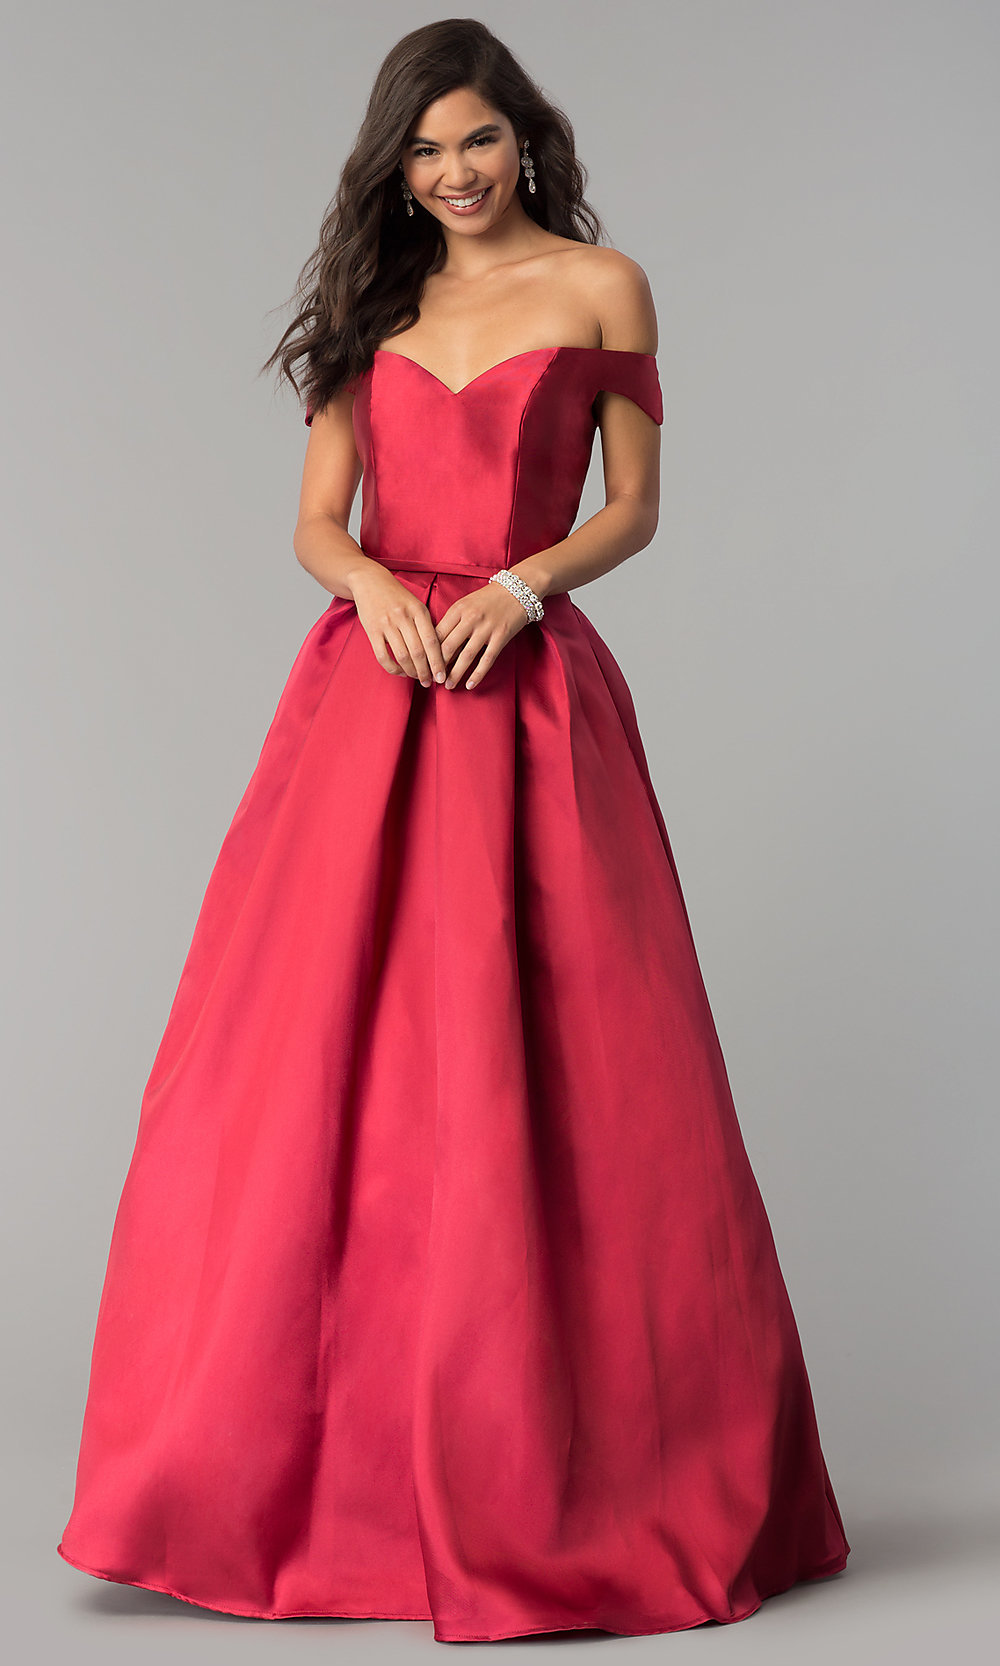 4c6e5bfbcabb Tap to expand · Image of off-the-shoulder long a-line prom dress.